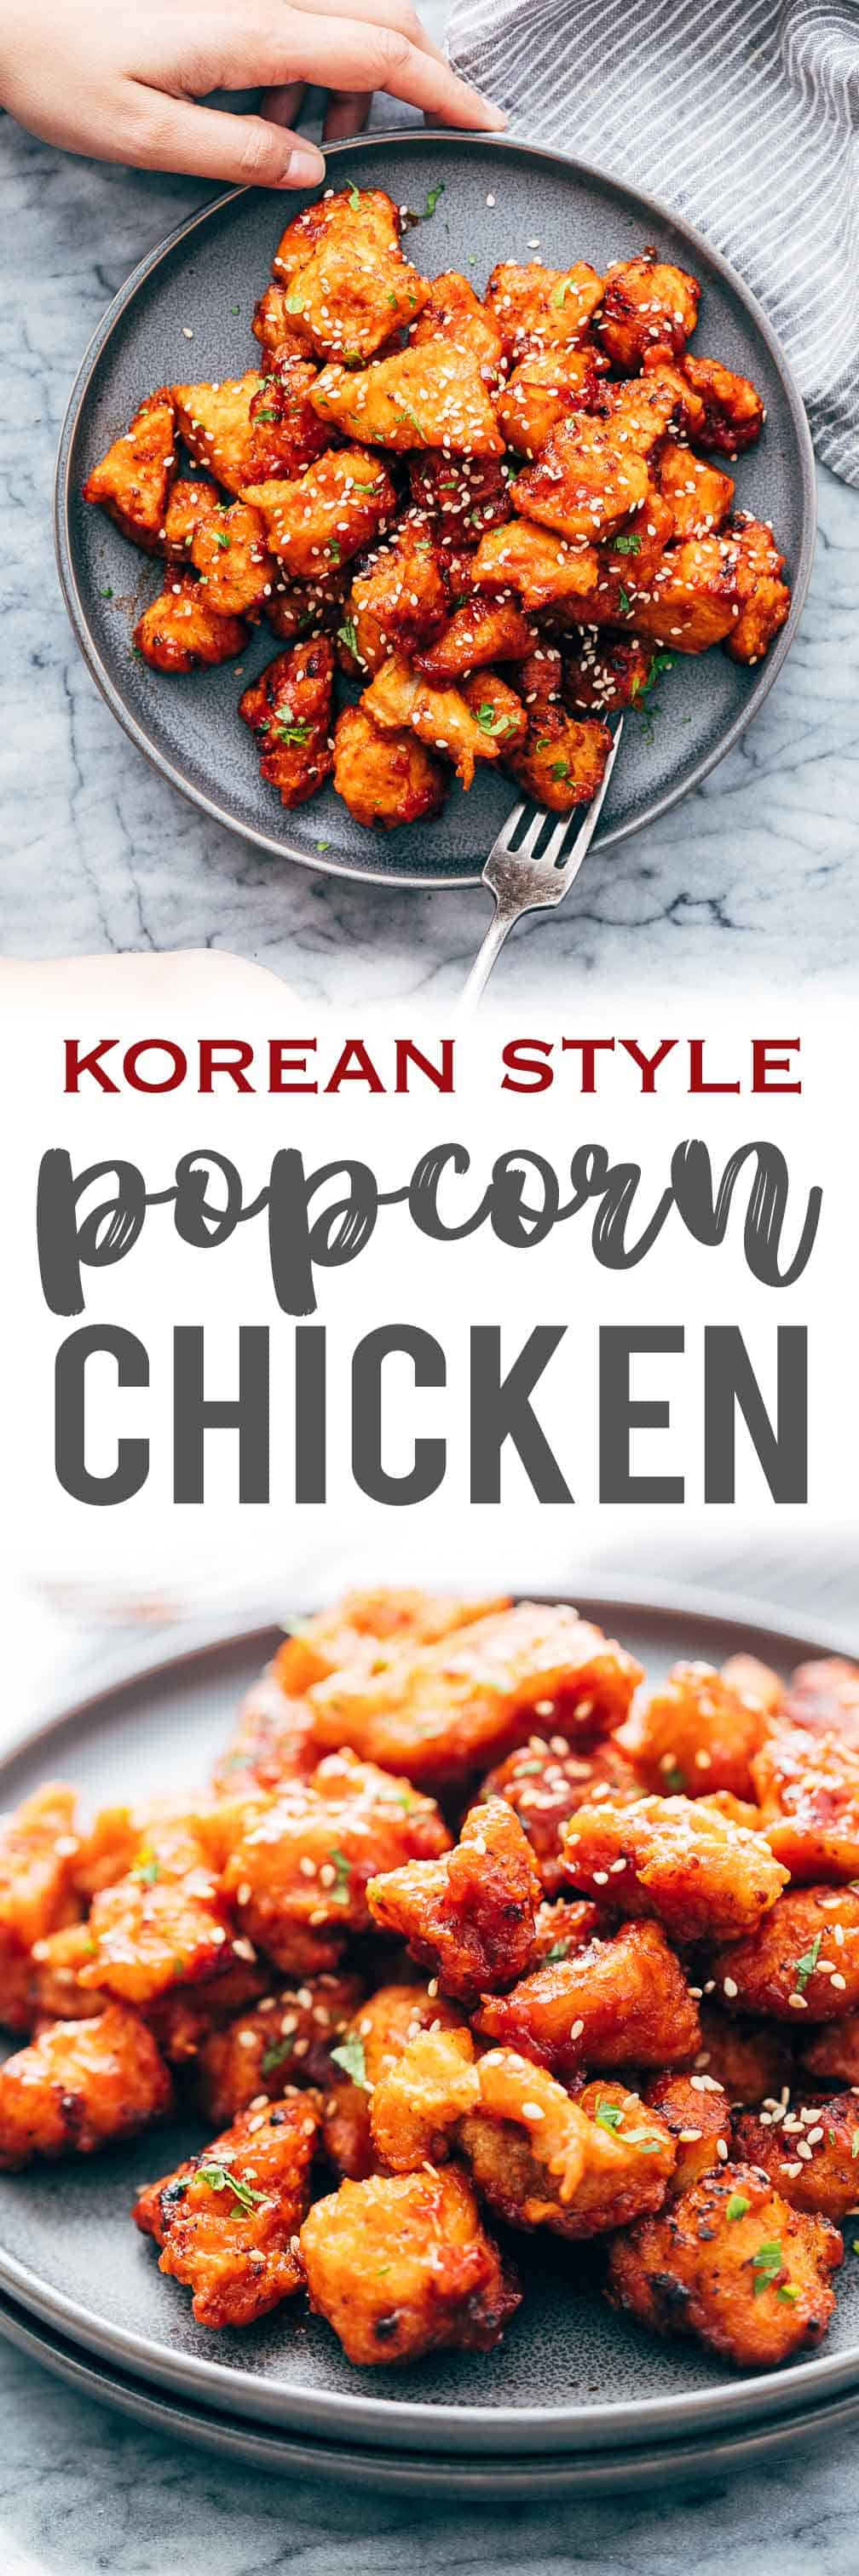 KOREAN POPCORN CHICKEN is sticky, spicy, tangy and crunchy. Inspired by the hyper-famous Korean street snack, Dakgangjeong, boneless chicken is deep fried and tossed in a sweet, sour and spicy sauce that makes every bite super addictive. #chicken #appetizer #party #snack #recipe